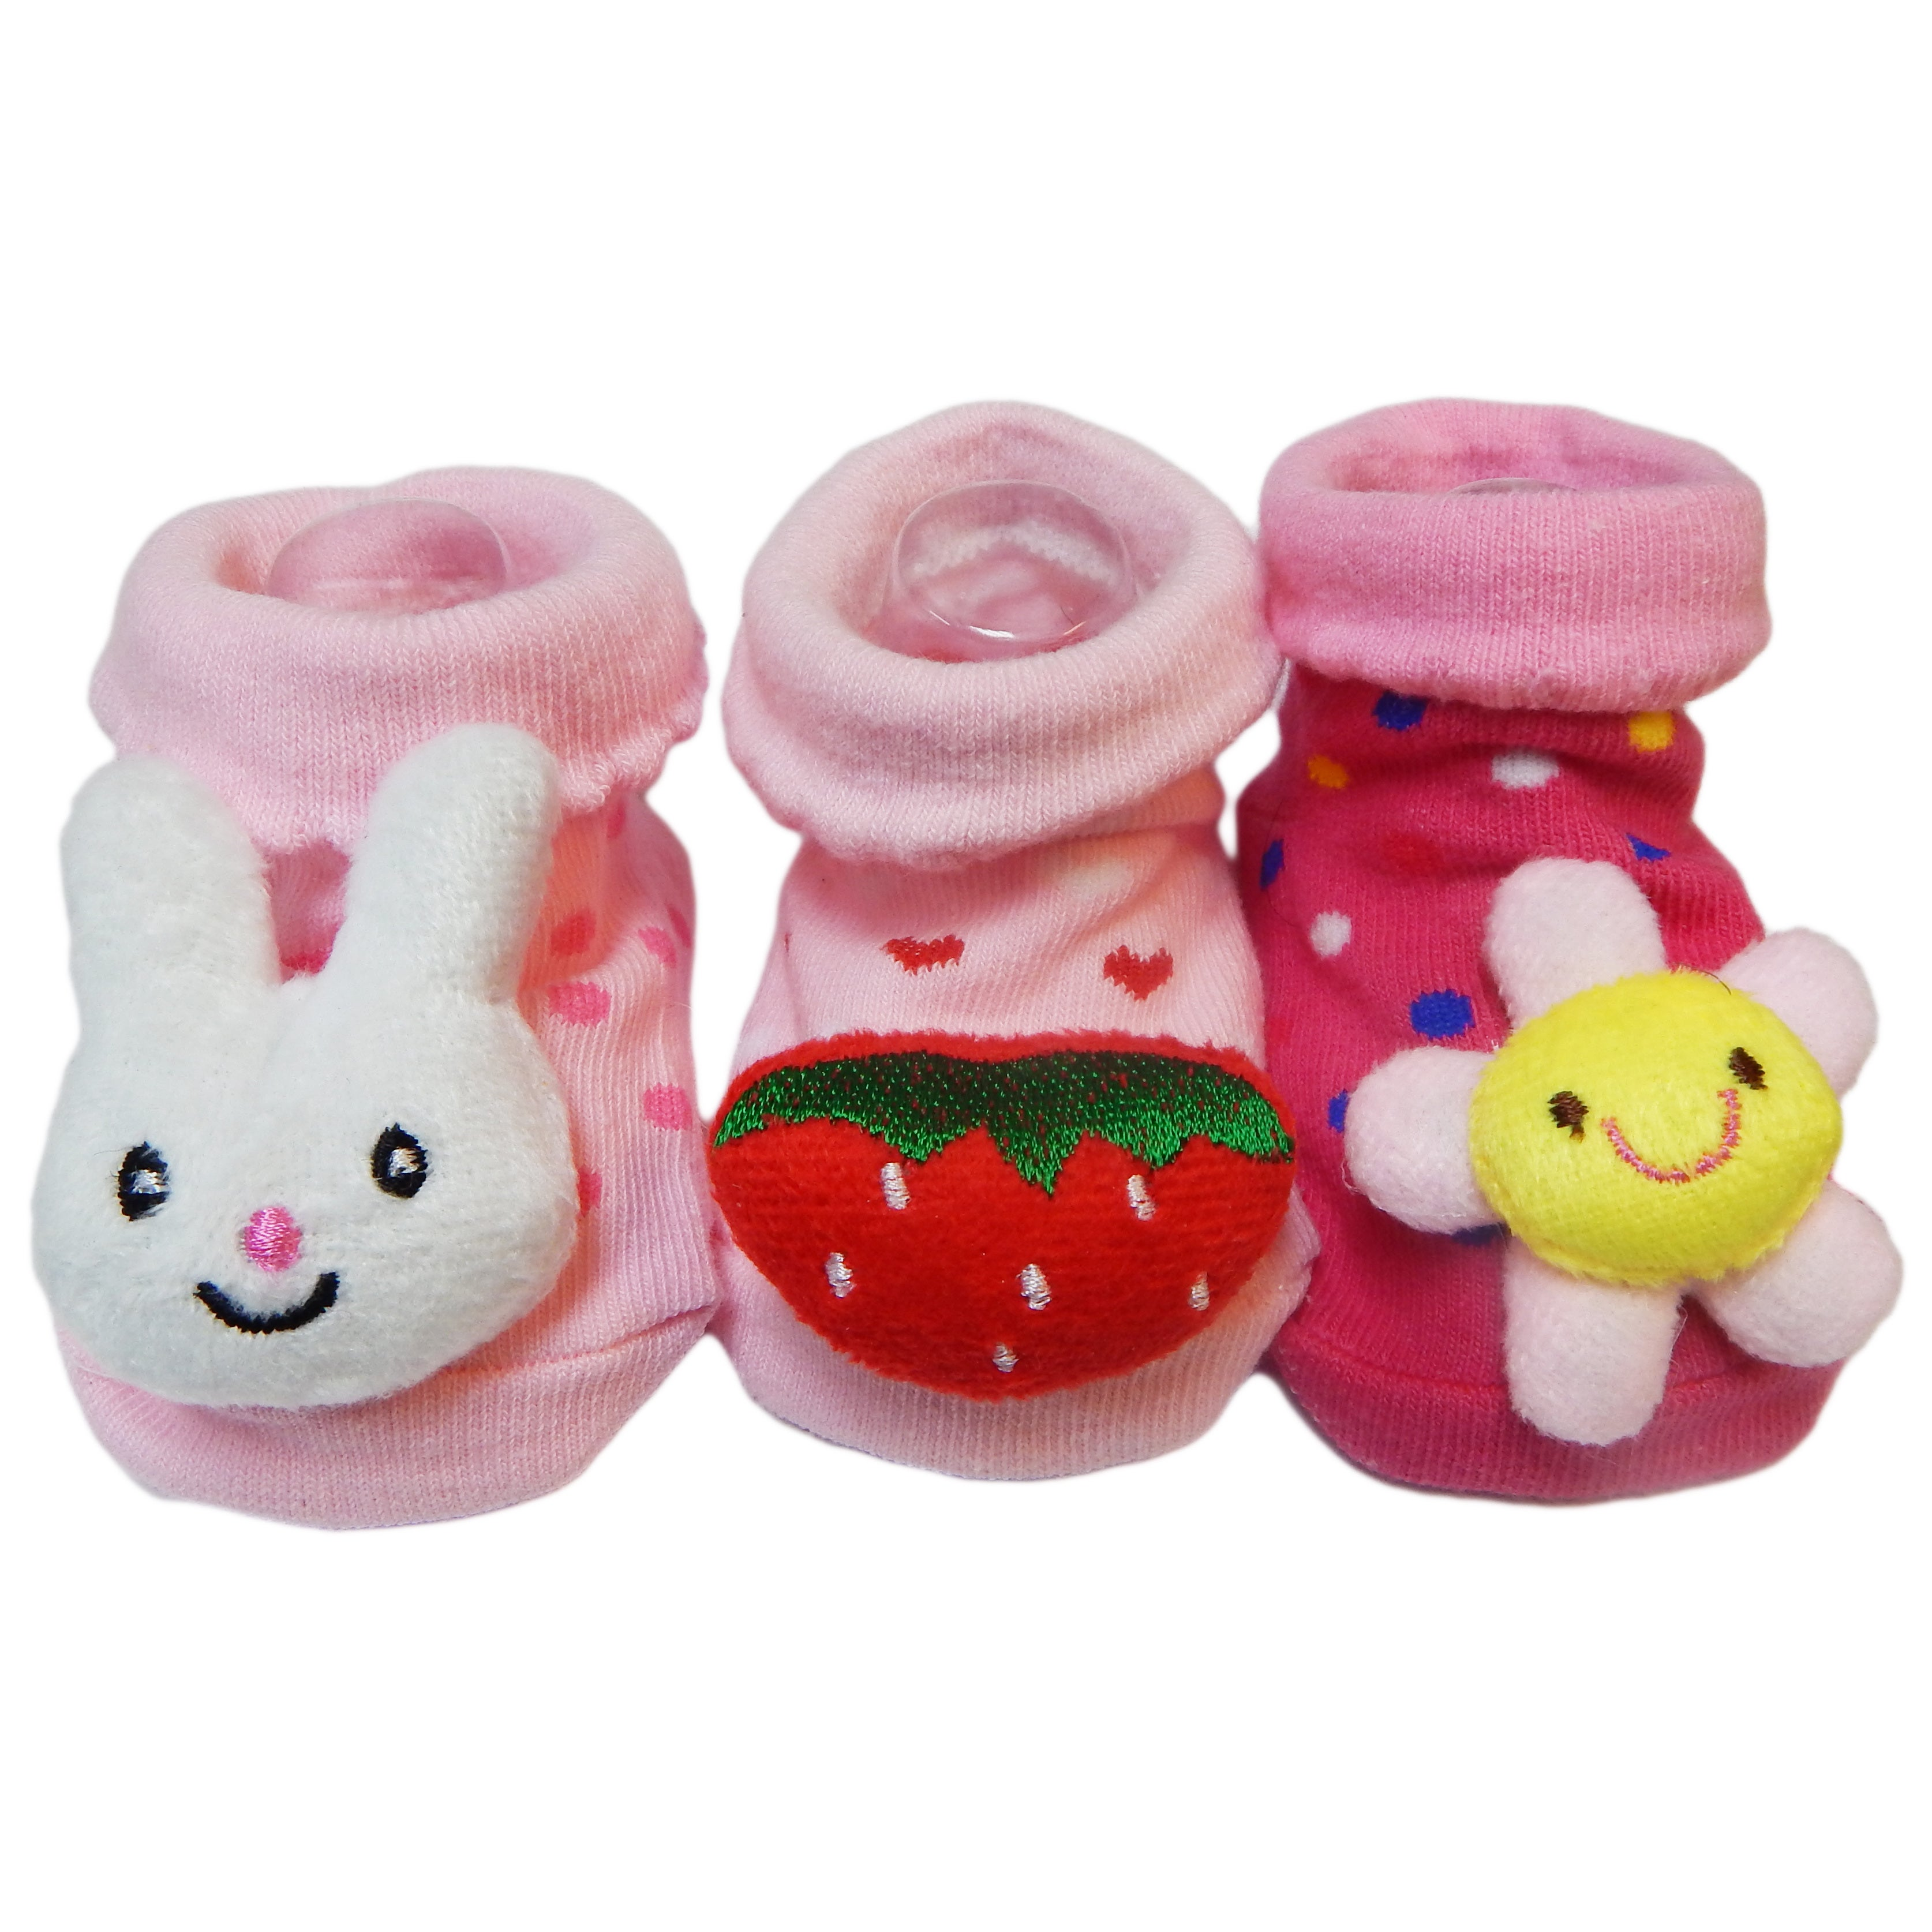 Non Slip Infant Toddler Cotton Slipper Socks Pack of 3 Free